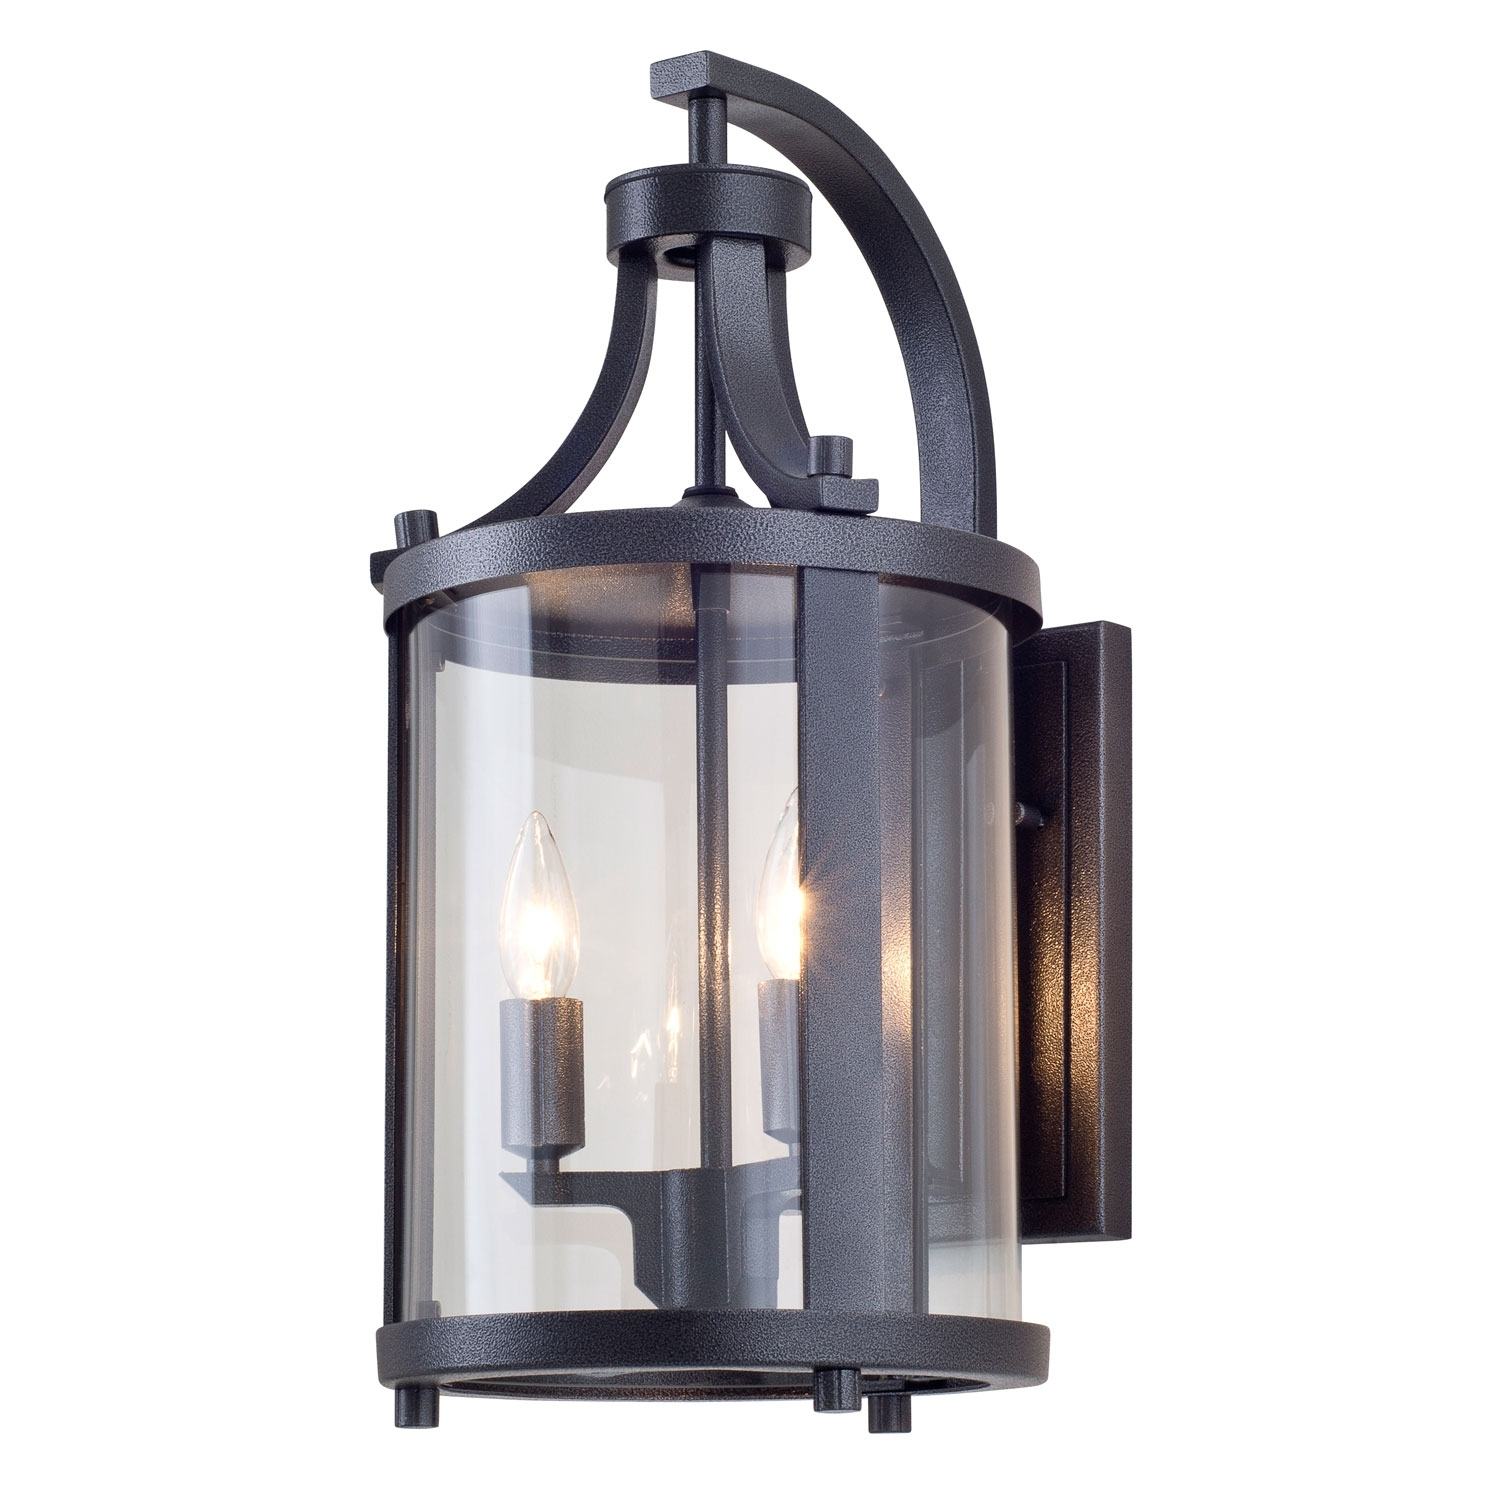 Industrial Outdoor Light Fittings Exterior Pendant Lighting Uk regarding Outdoor Exterior Lanterns (Image 9 of 20)